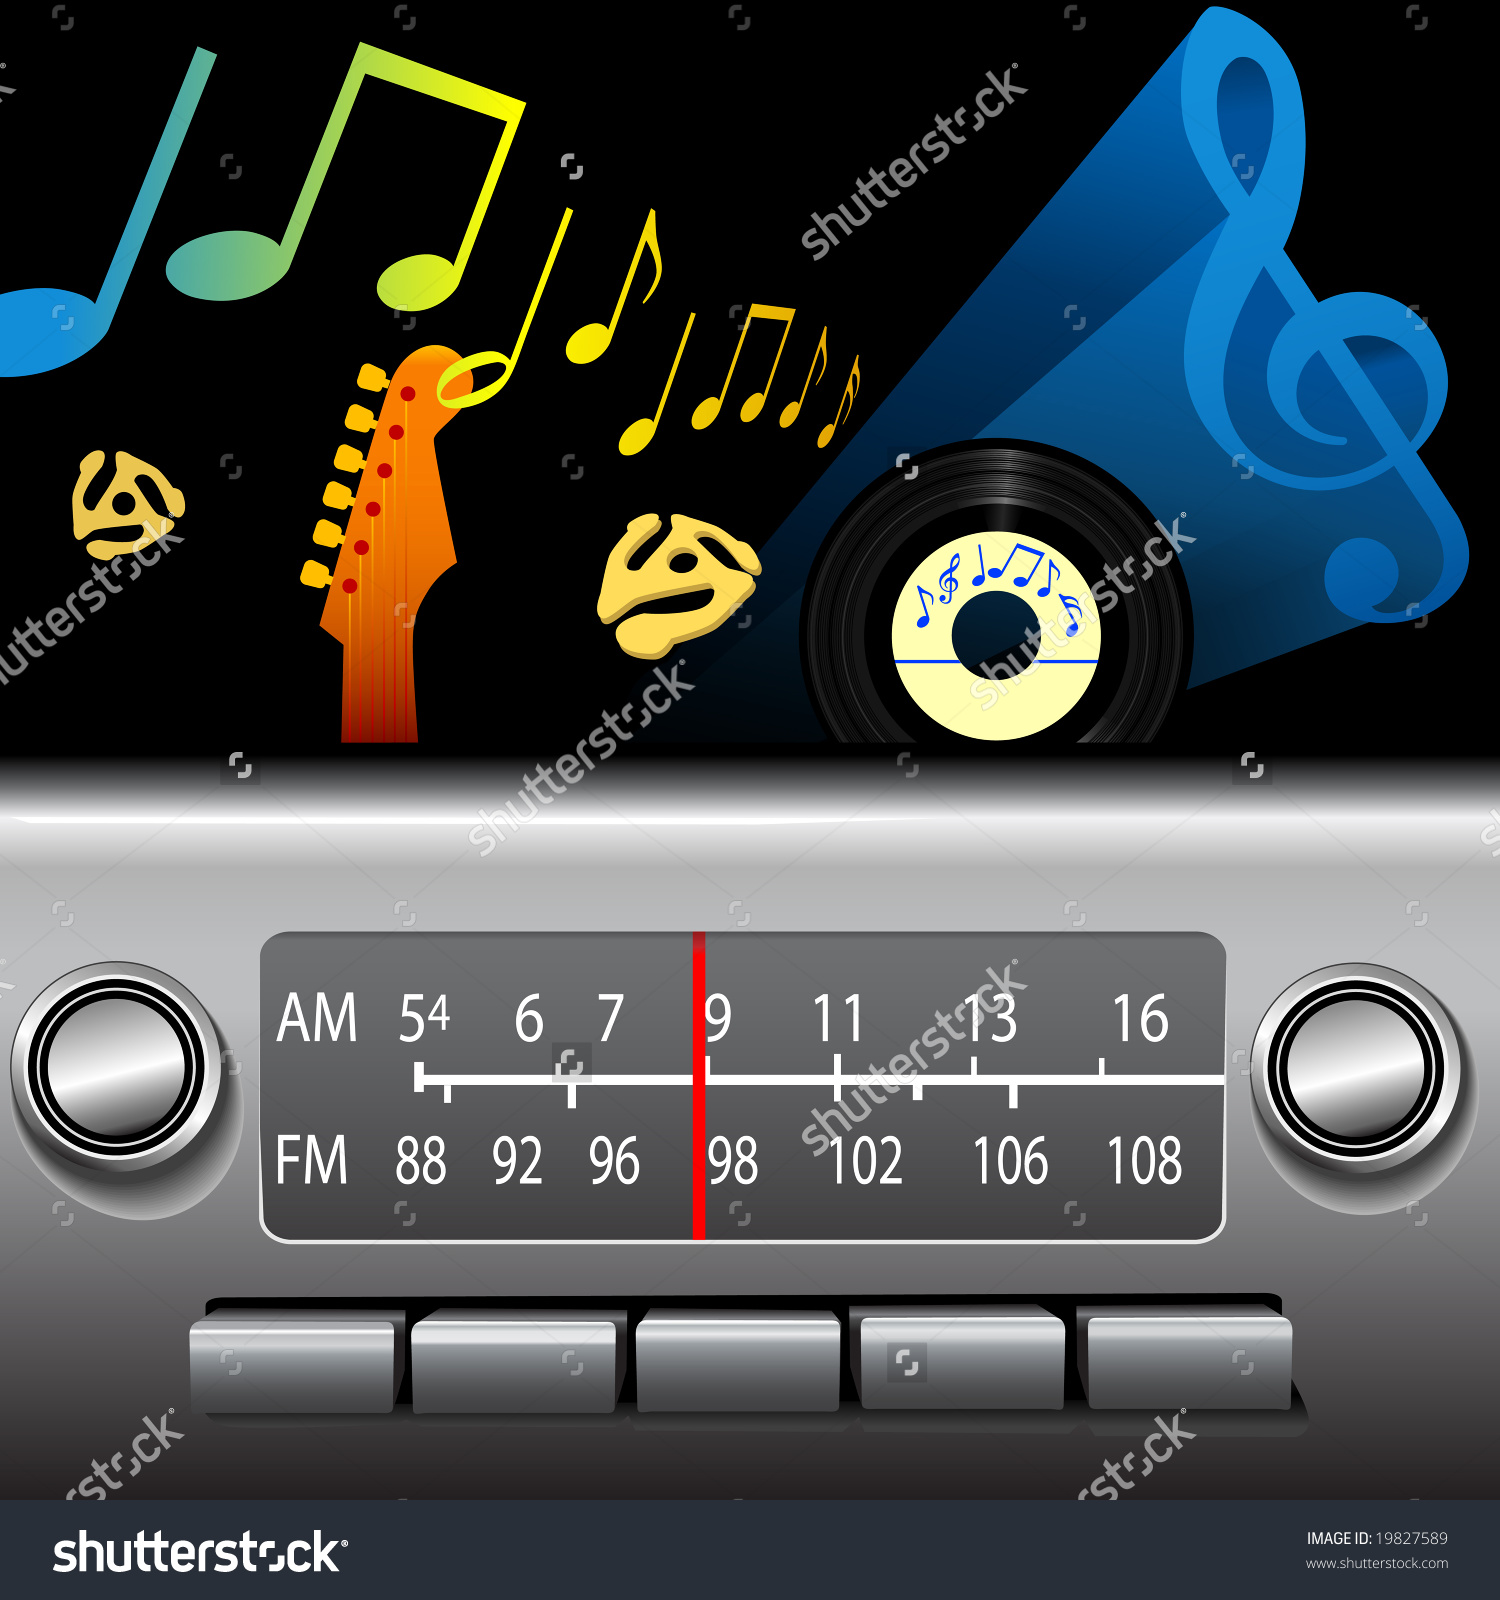 Dj Drive Time On Retro Fm Stock Vector 19827589.